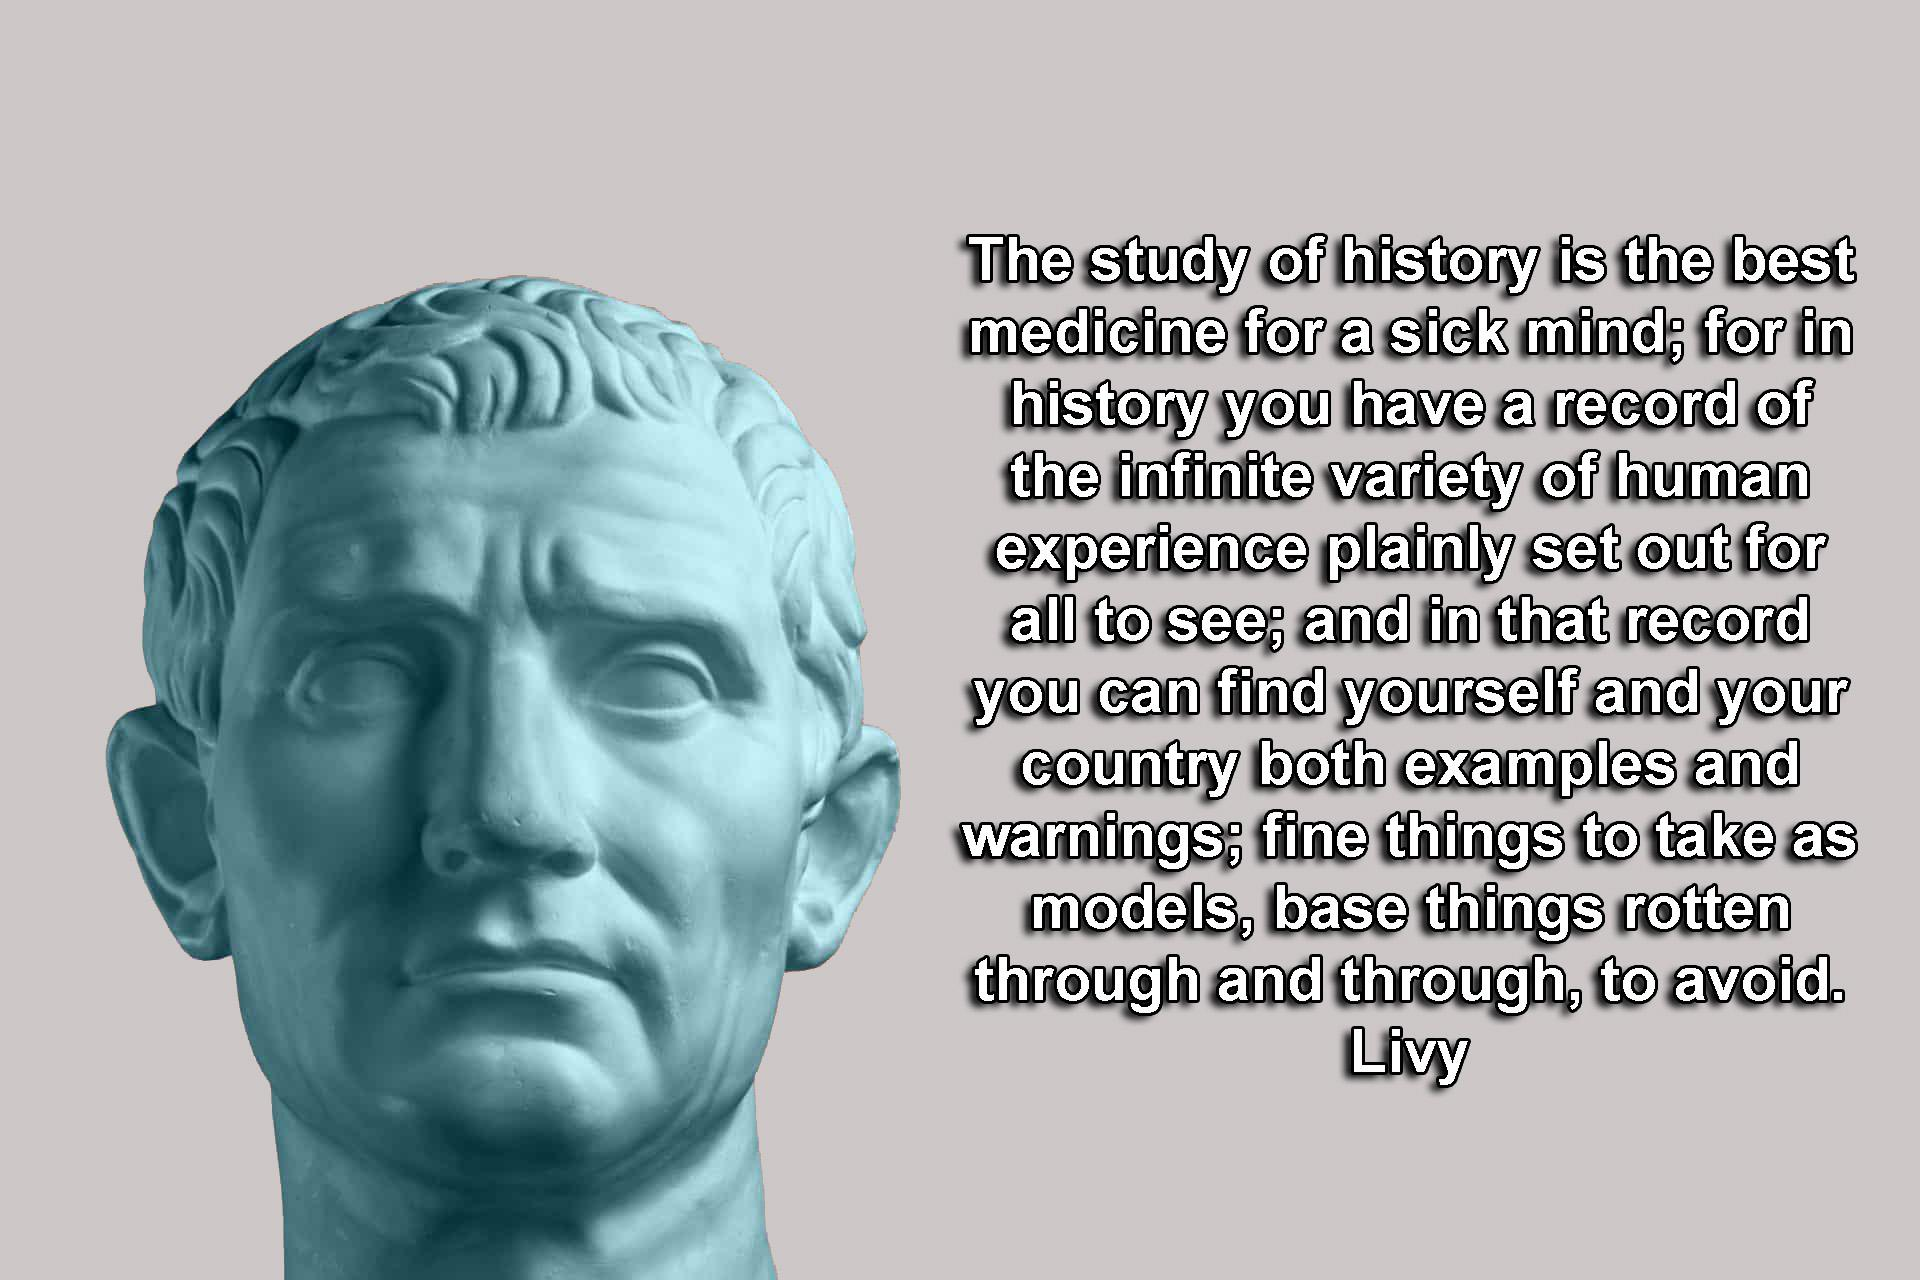 """The study of history is the best medicine for a sick mind; for in history you have a record of the infinite variety of human experience plainly set out for all to see; and in that record you can find yourself and your country both examples and warnings…."" – Livy [OC][1920 × 1280]"